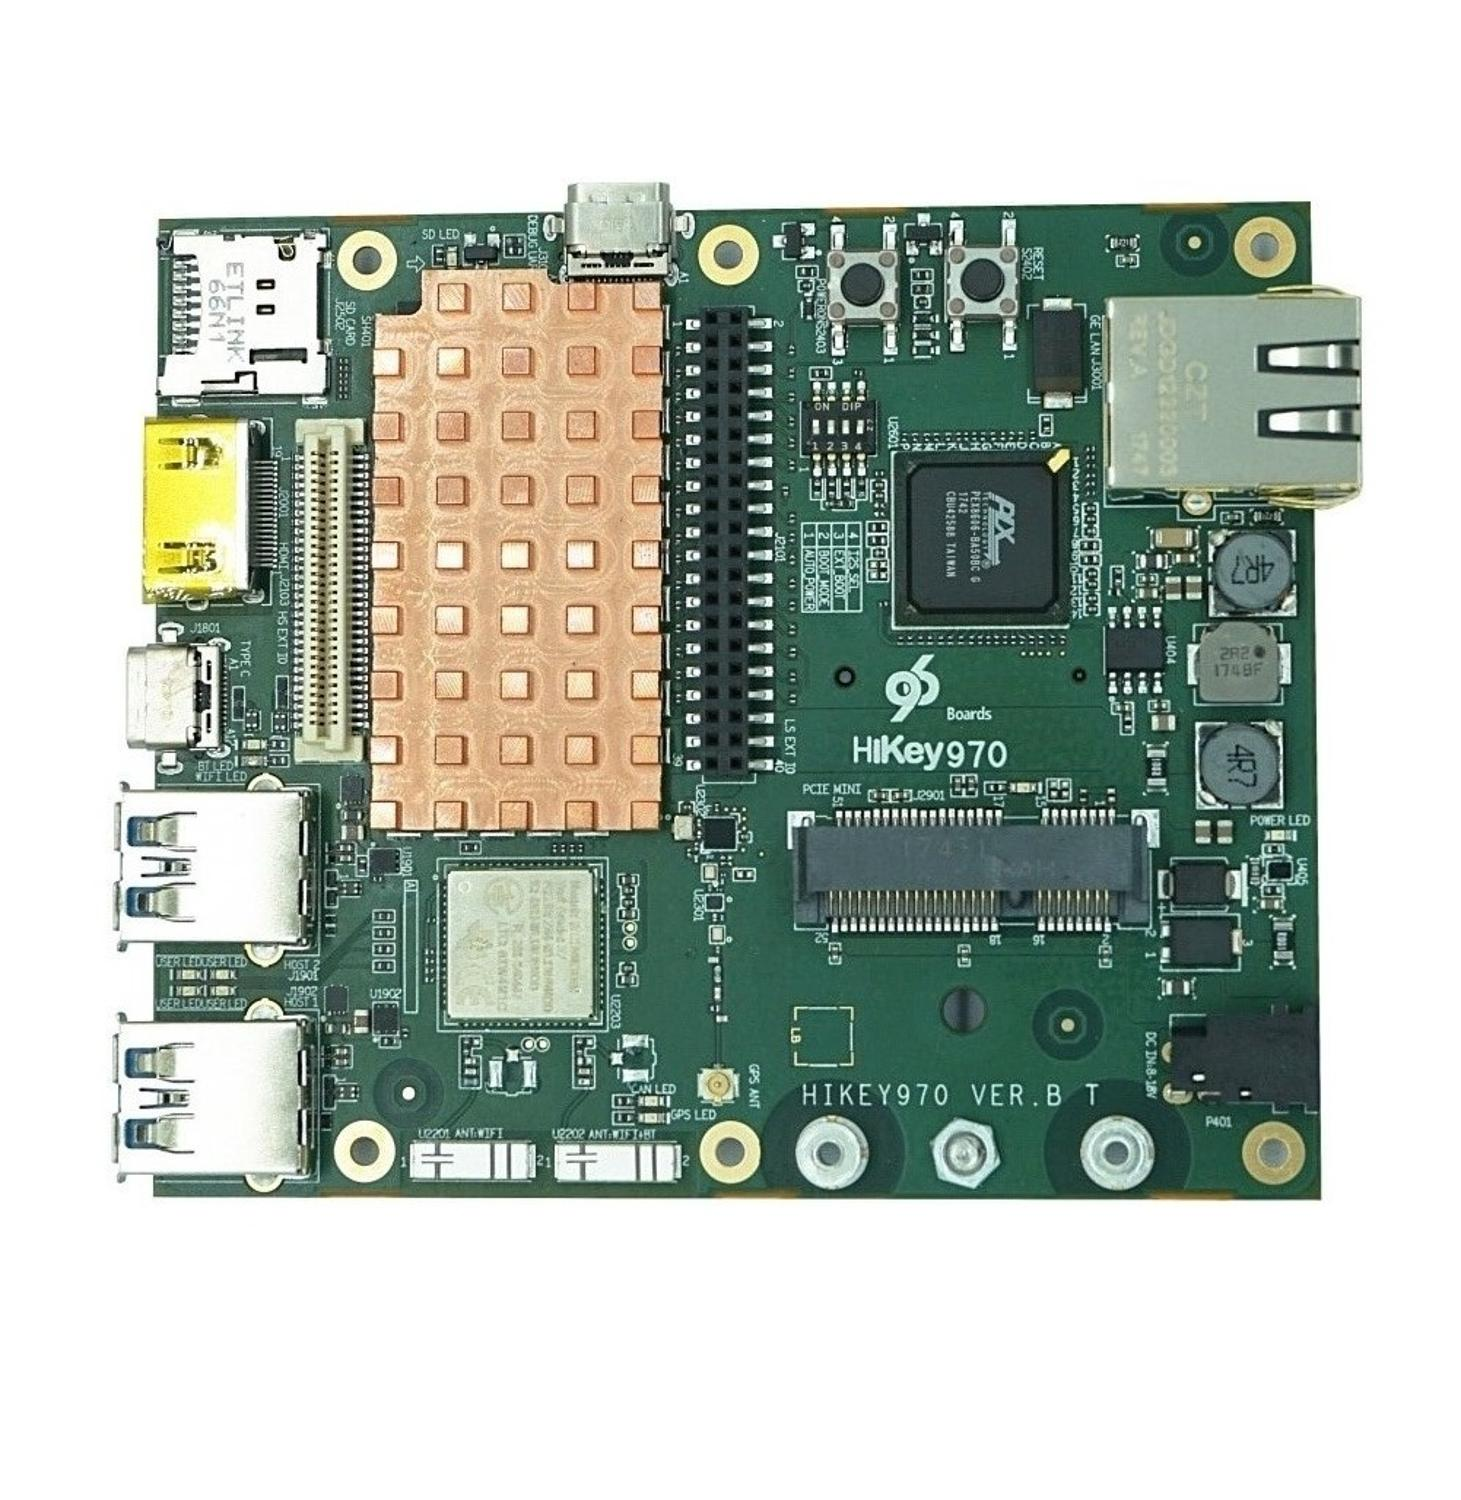 For Hikey970 Hass development board based on Kirin 970 AI artificial intelligence platform to support hardware acceleration